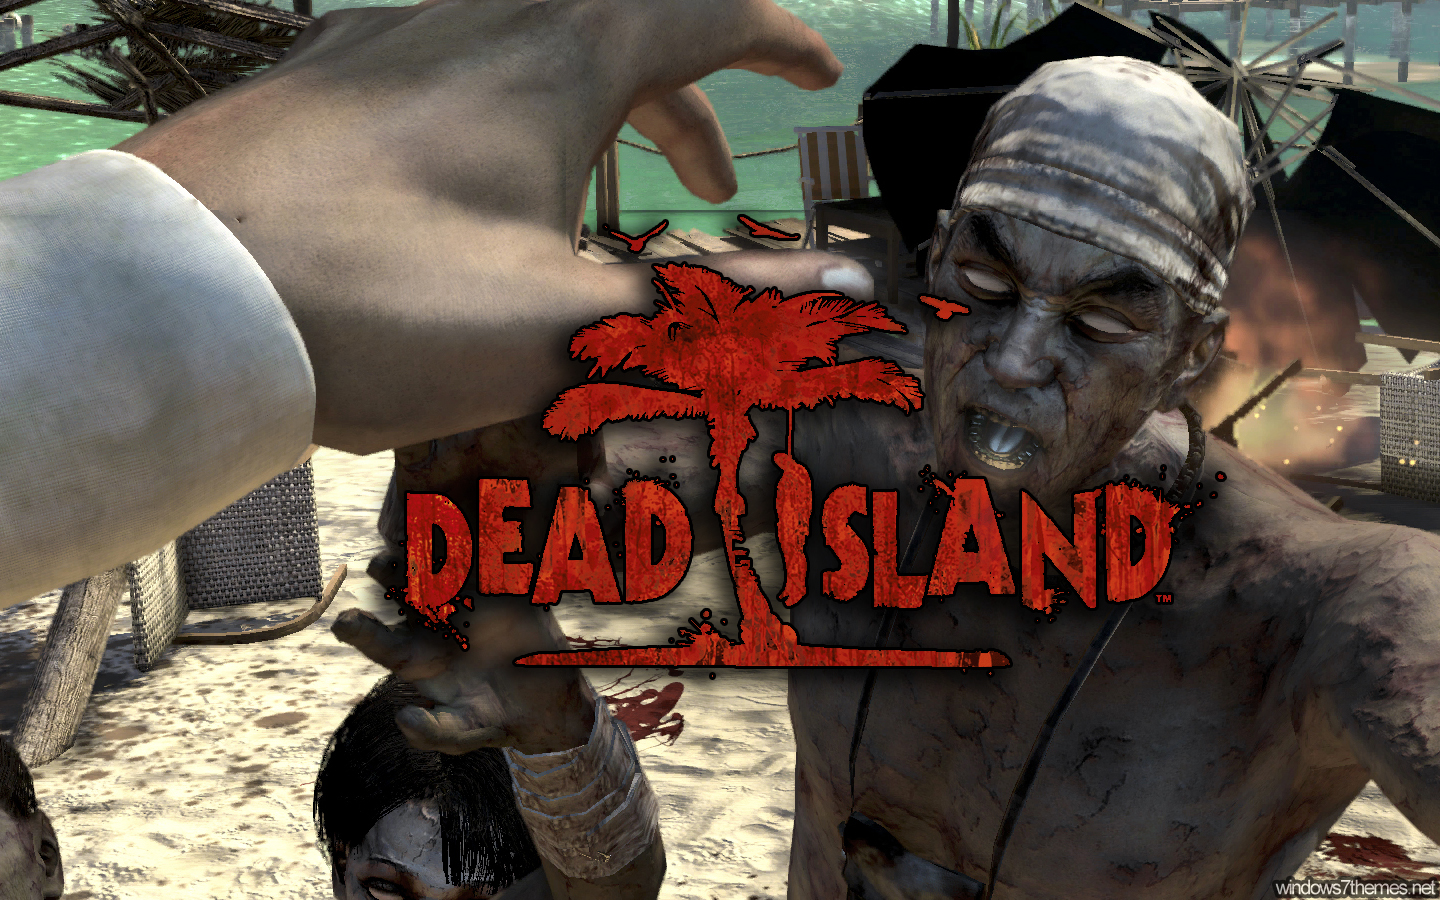 Dead Island wallpapers shortly. If you have created any Dead Island ...